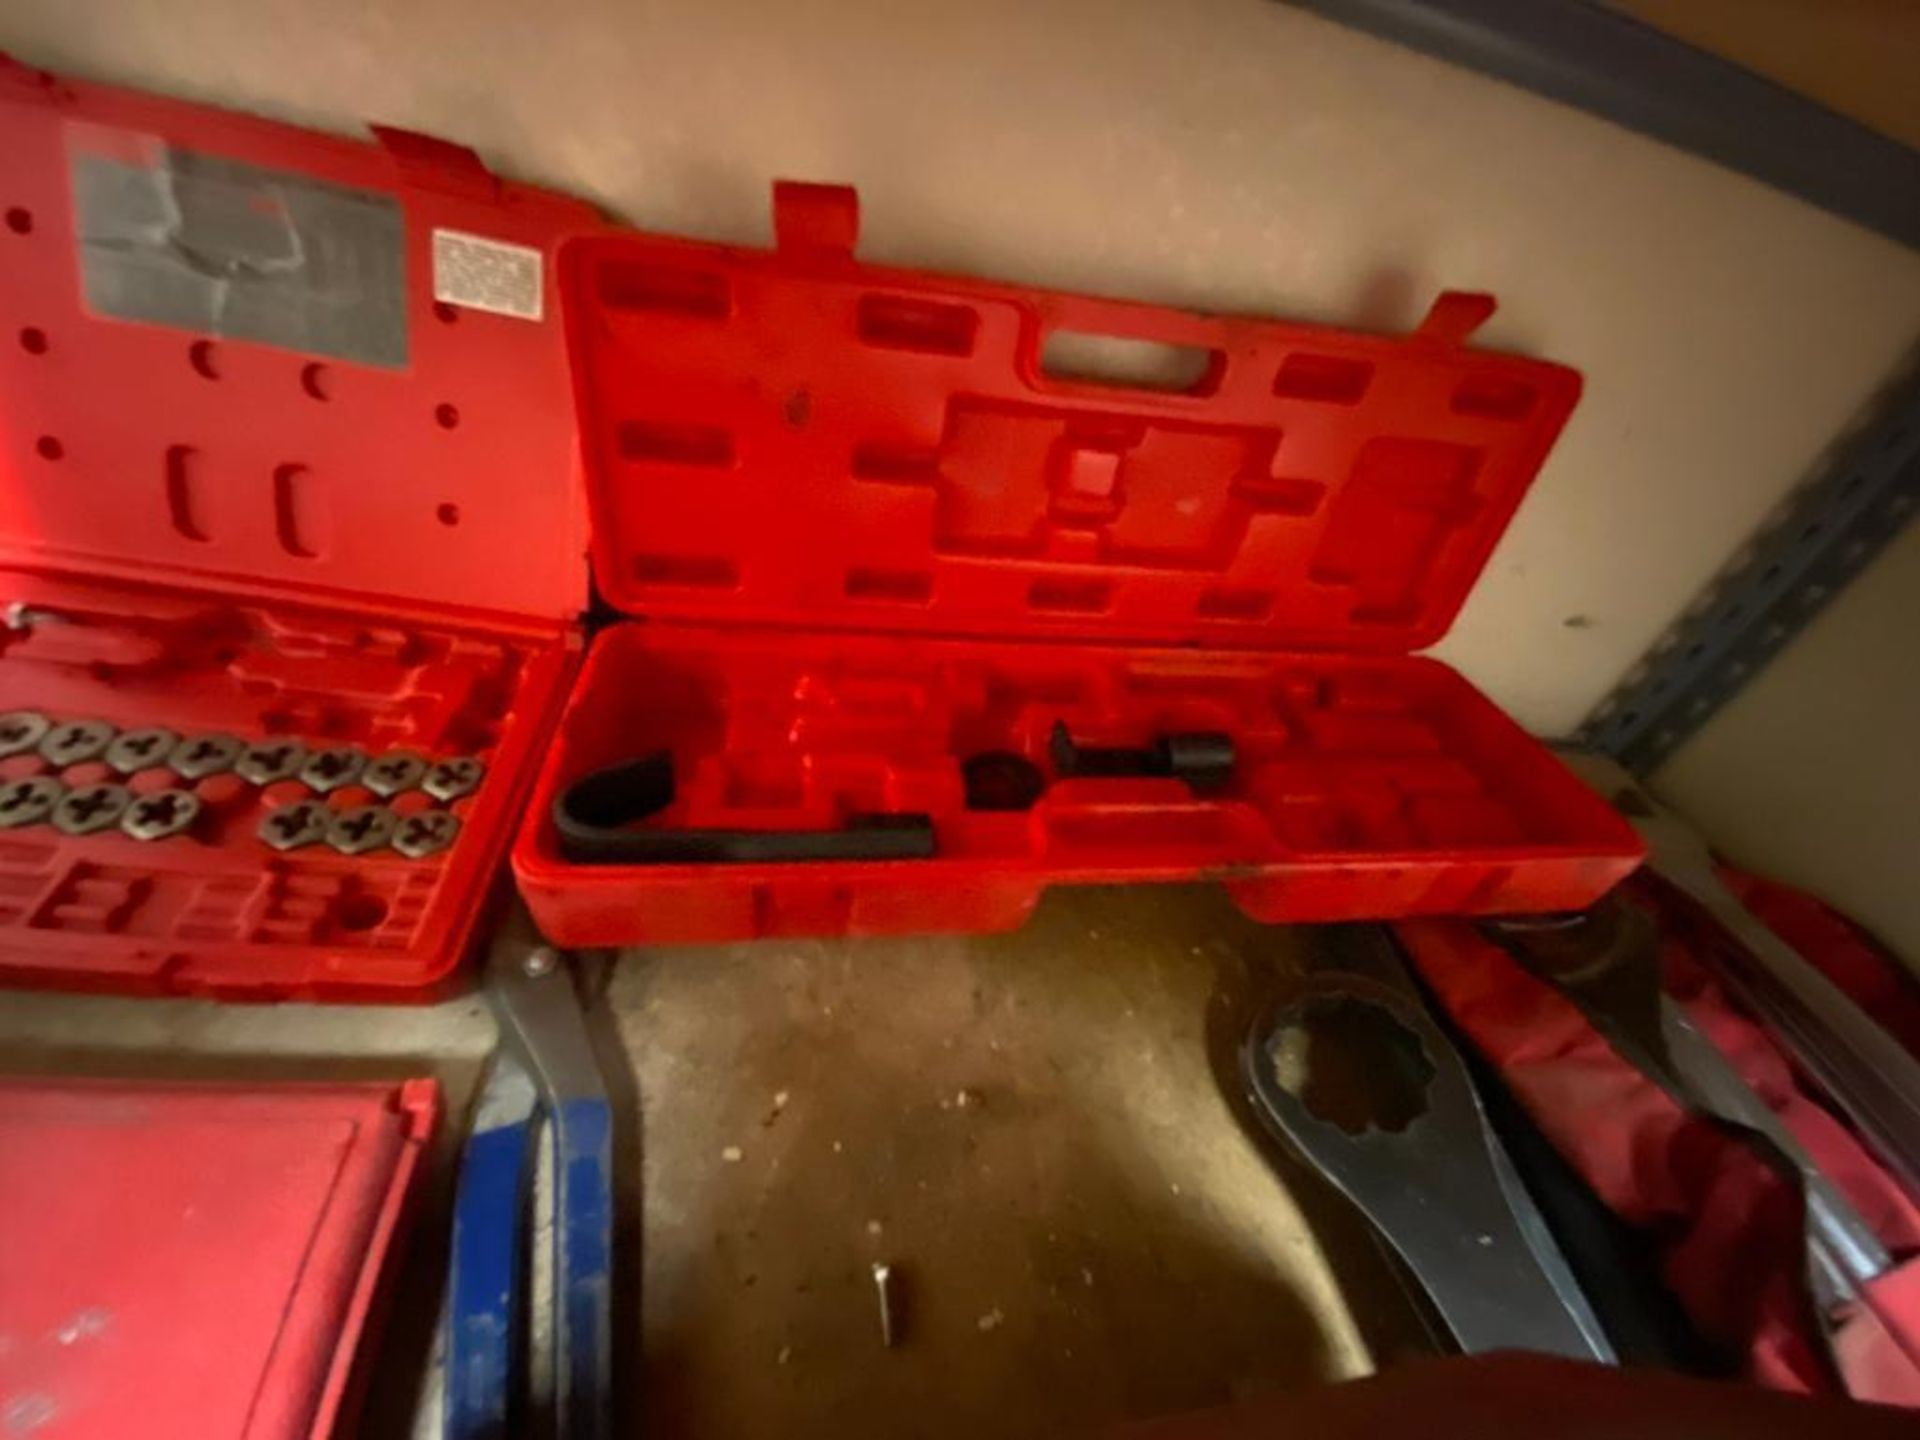 various tools includes bits, large wrenches, lockout tagout kit, grinder - Image 16 of 18